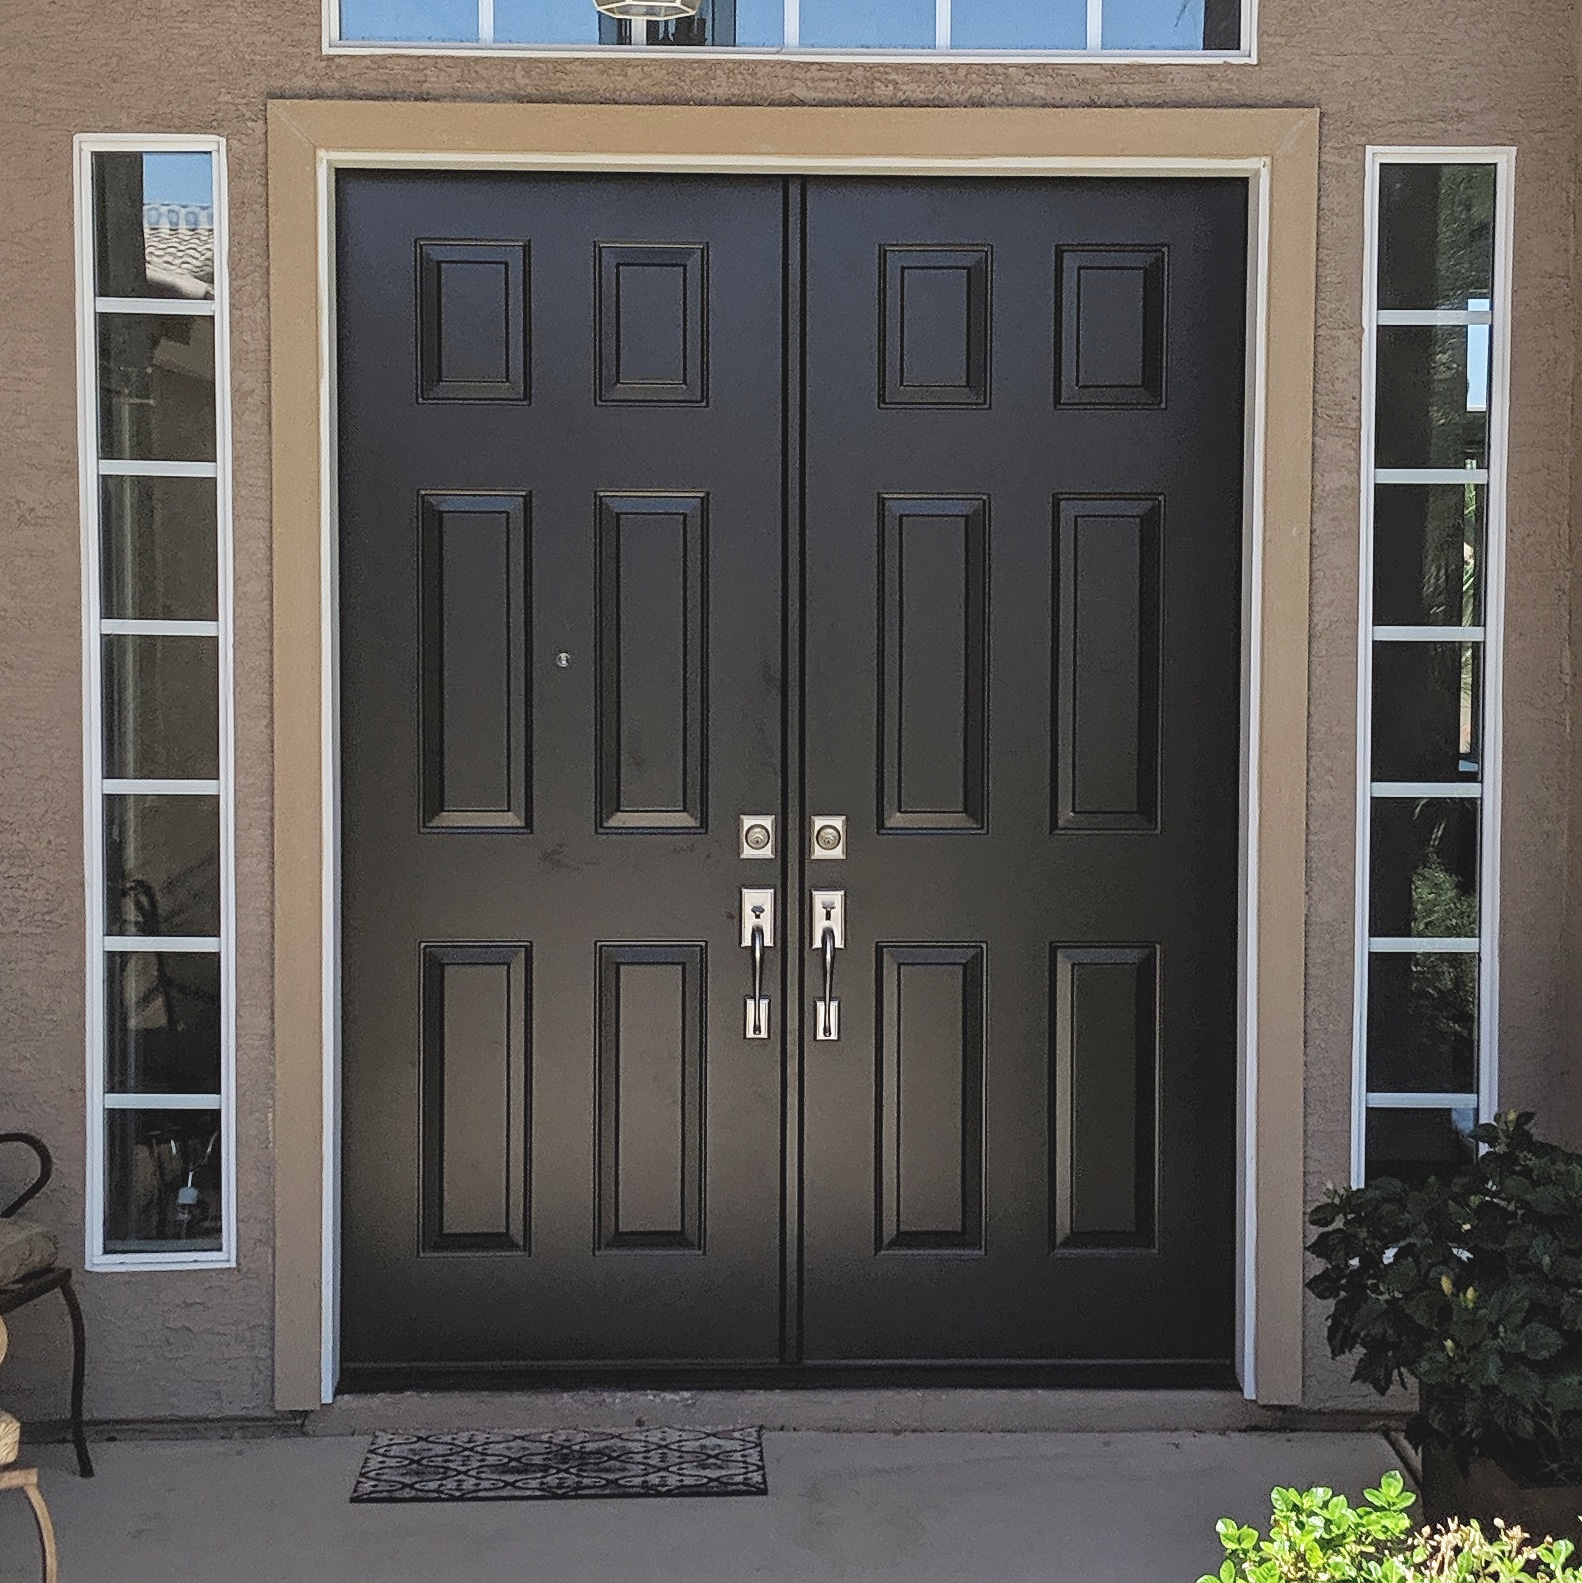 Arizona Window and Door in Scottsdale and Tucson showing front french doors